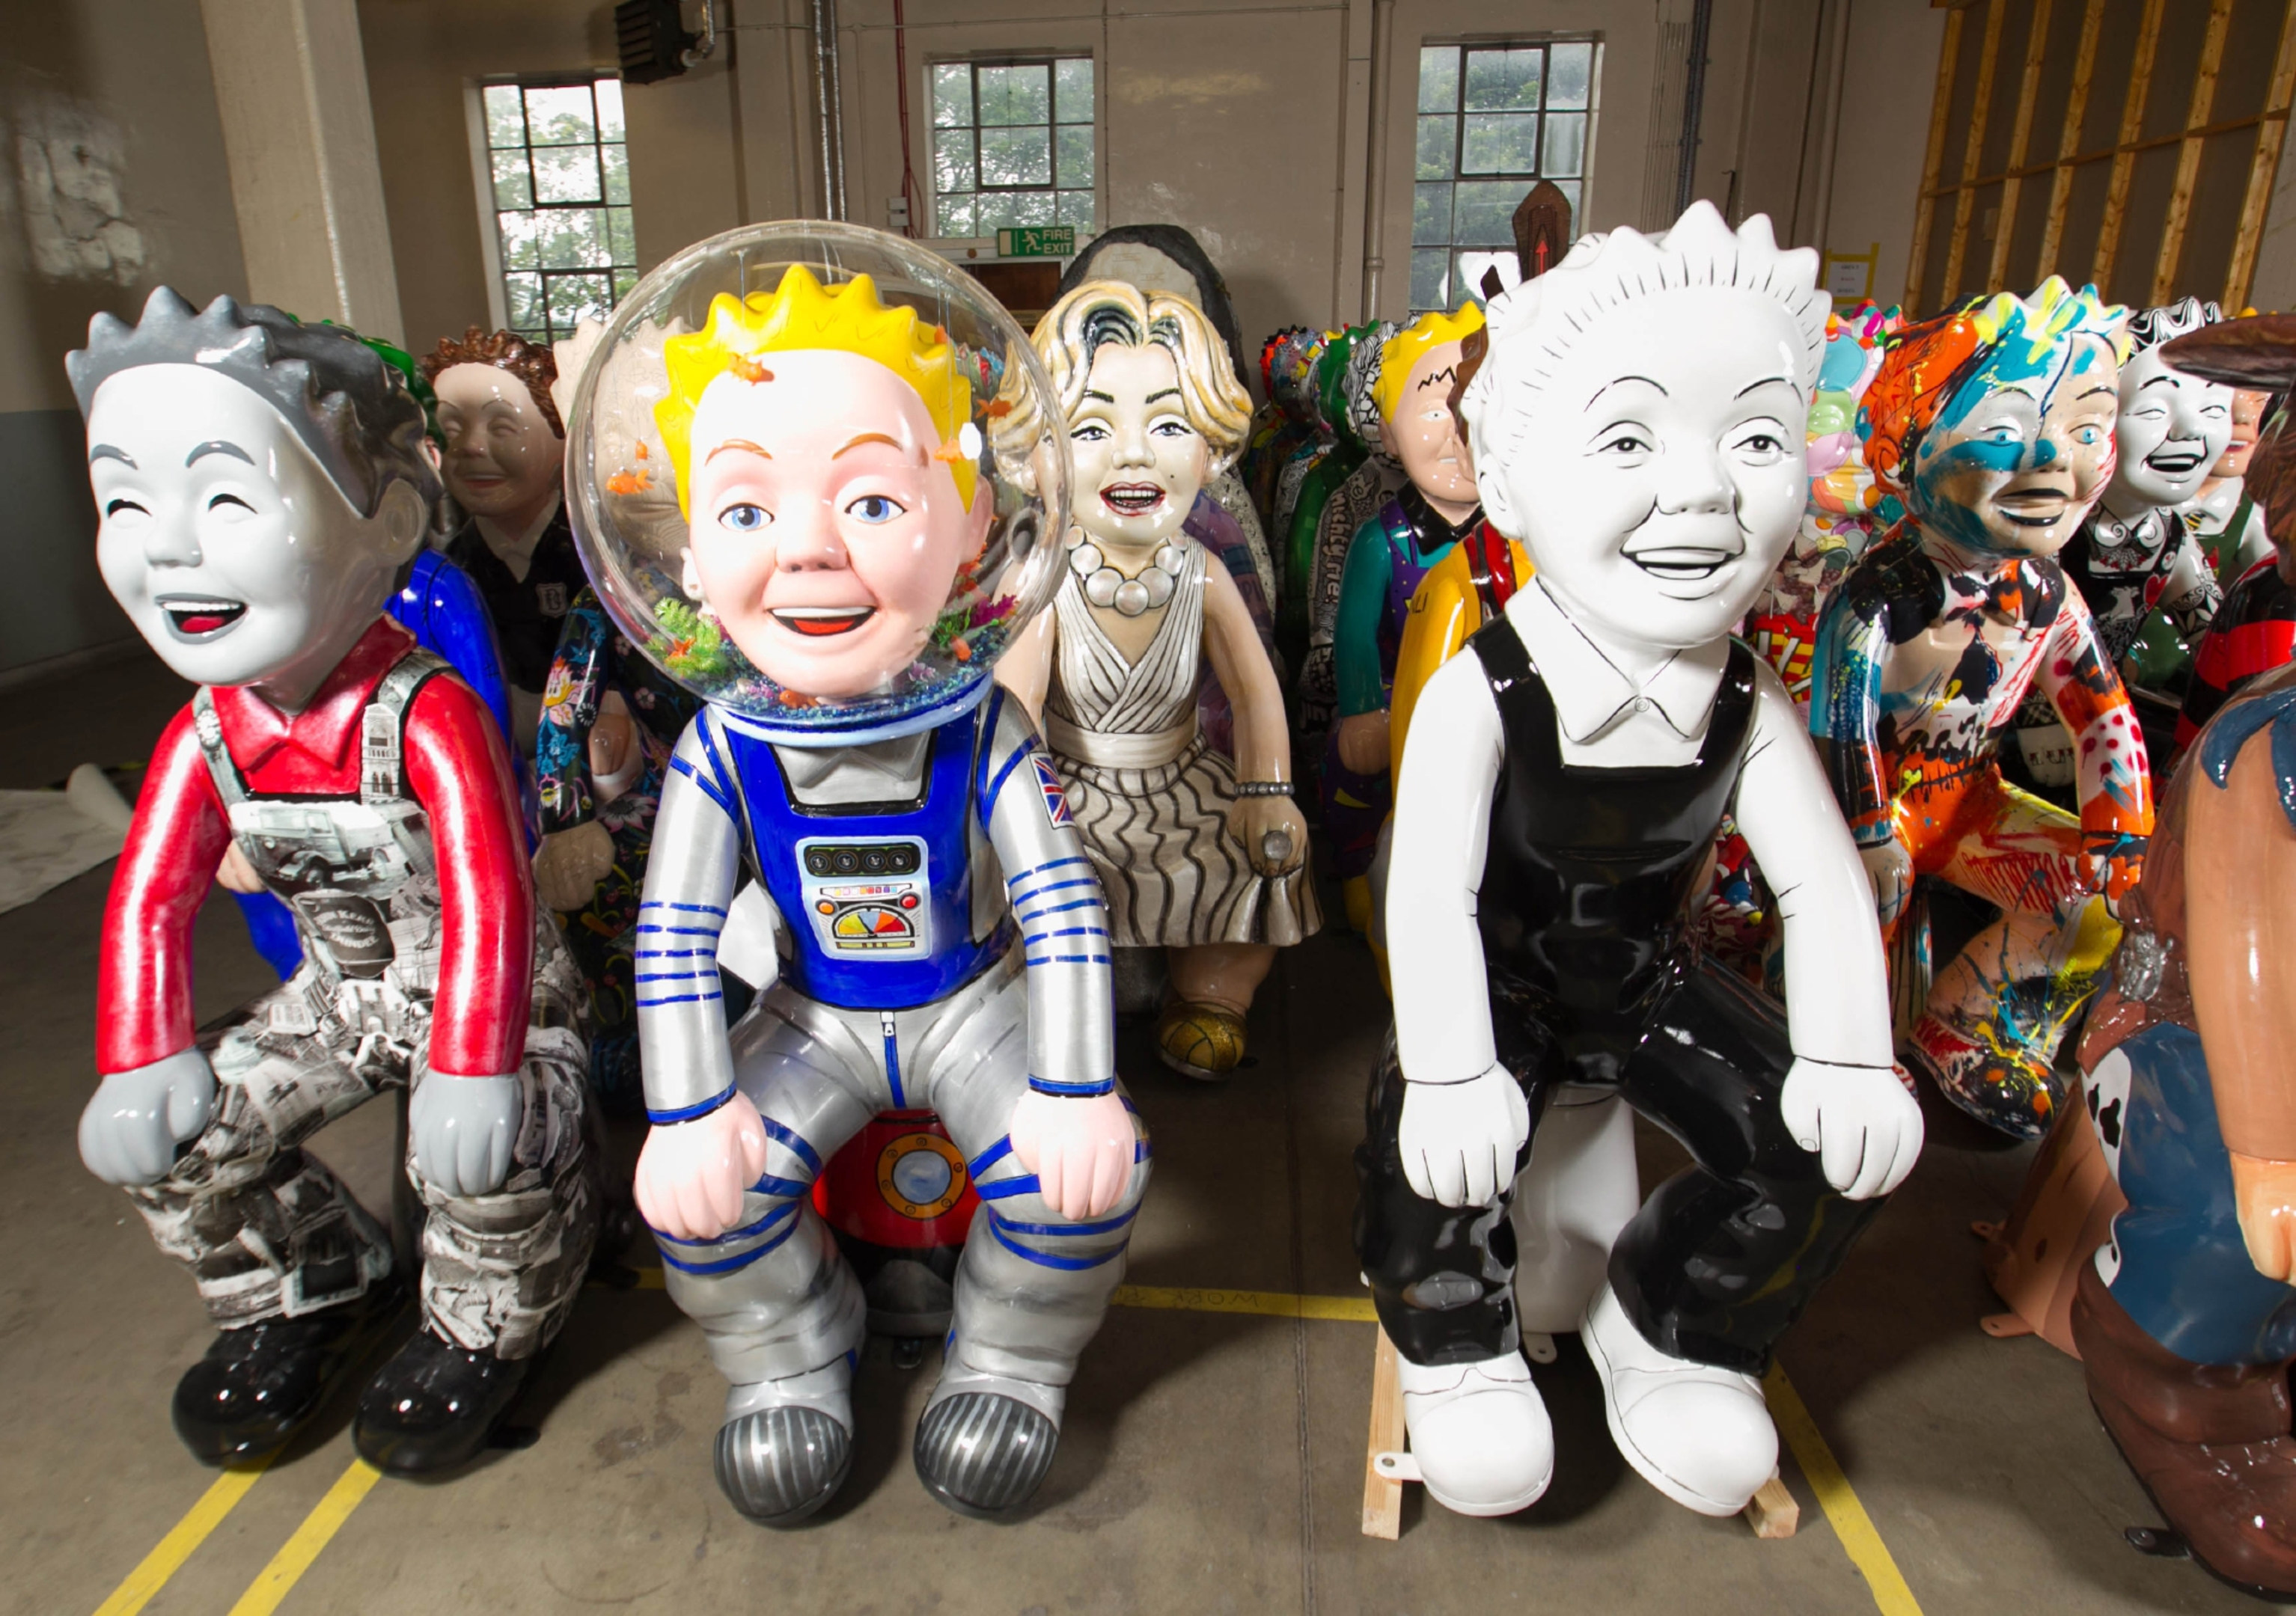 There will be one final Oor Wullie statue auctioned off in Dundee next month.